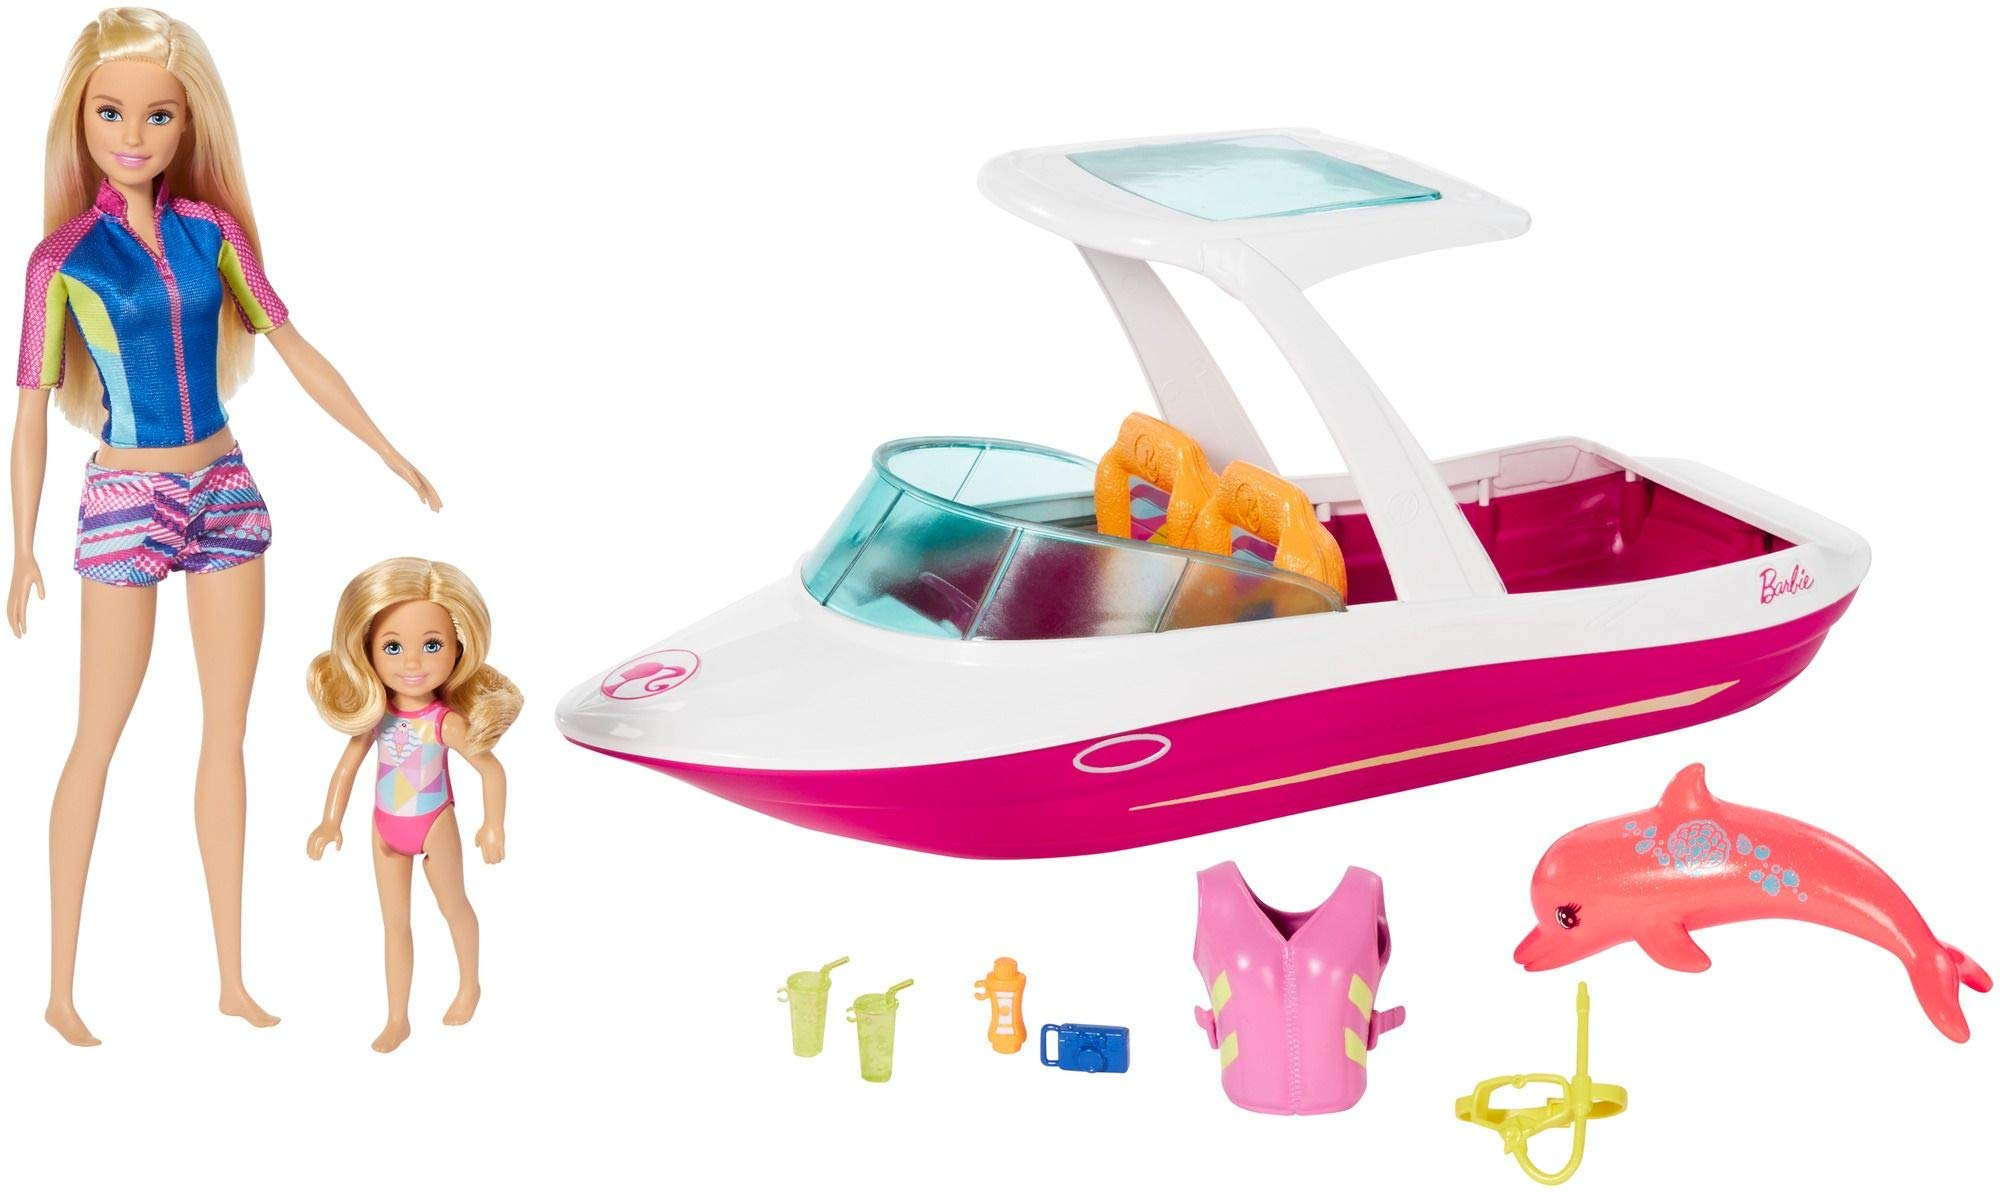 Barbie Dolphin Magic Ocean View Boat & Doll Giftset by Barbie